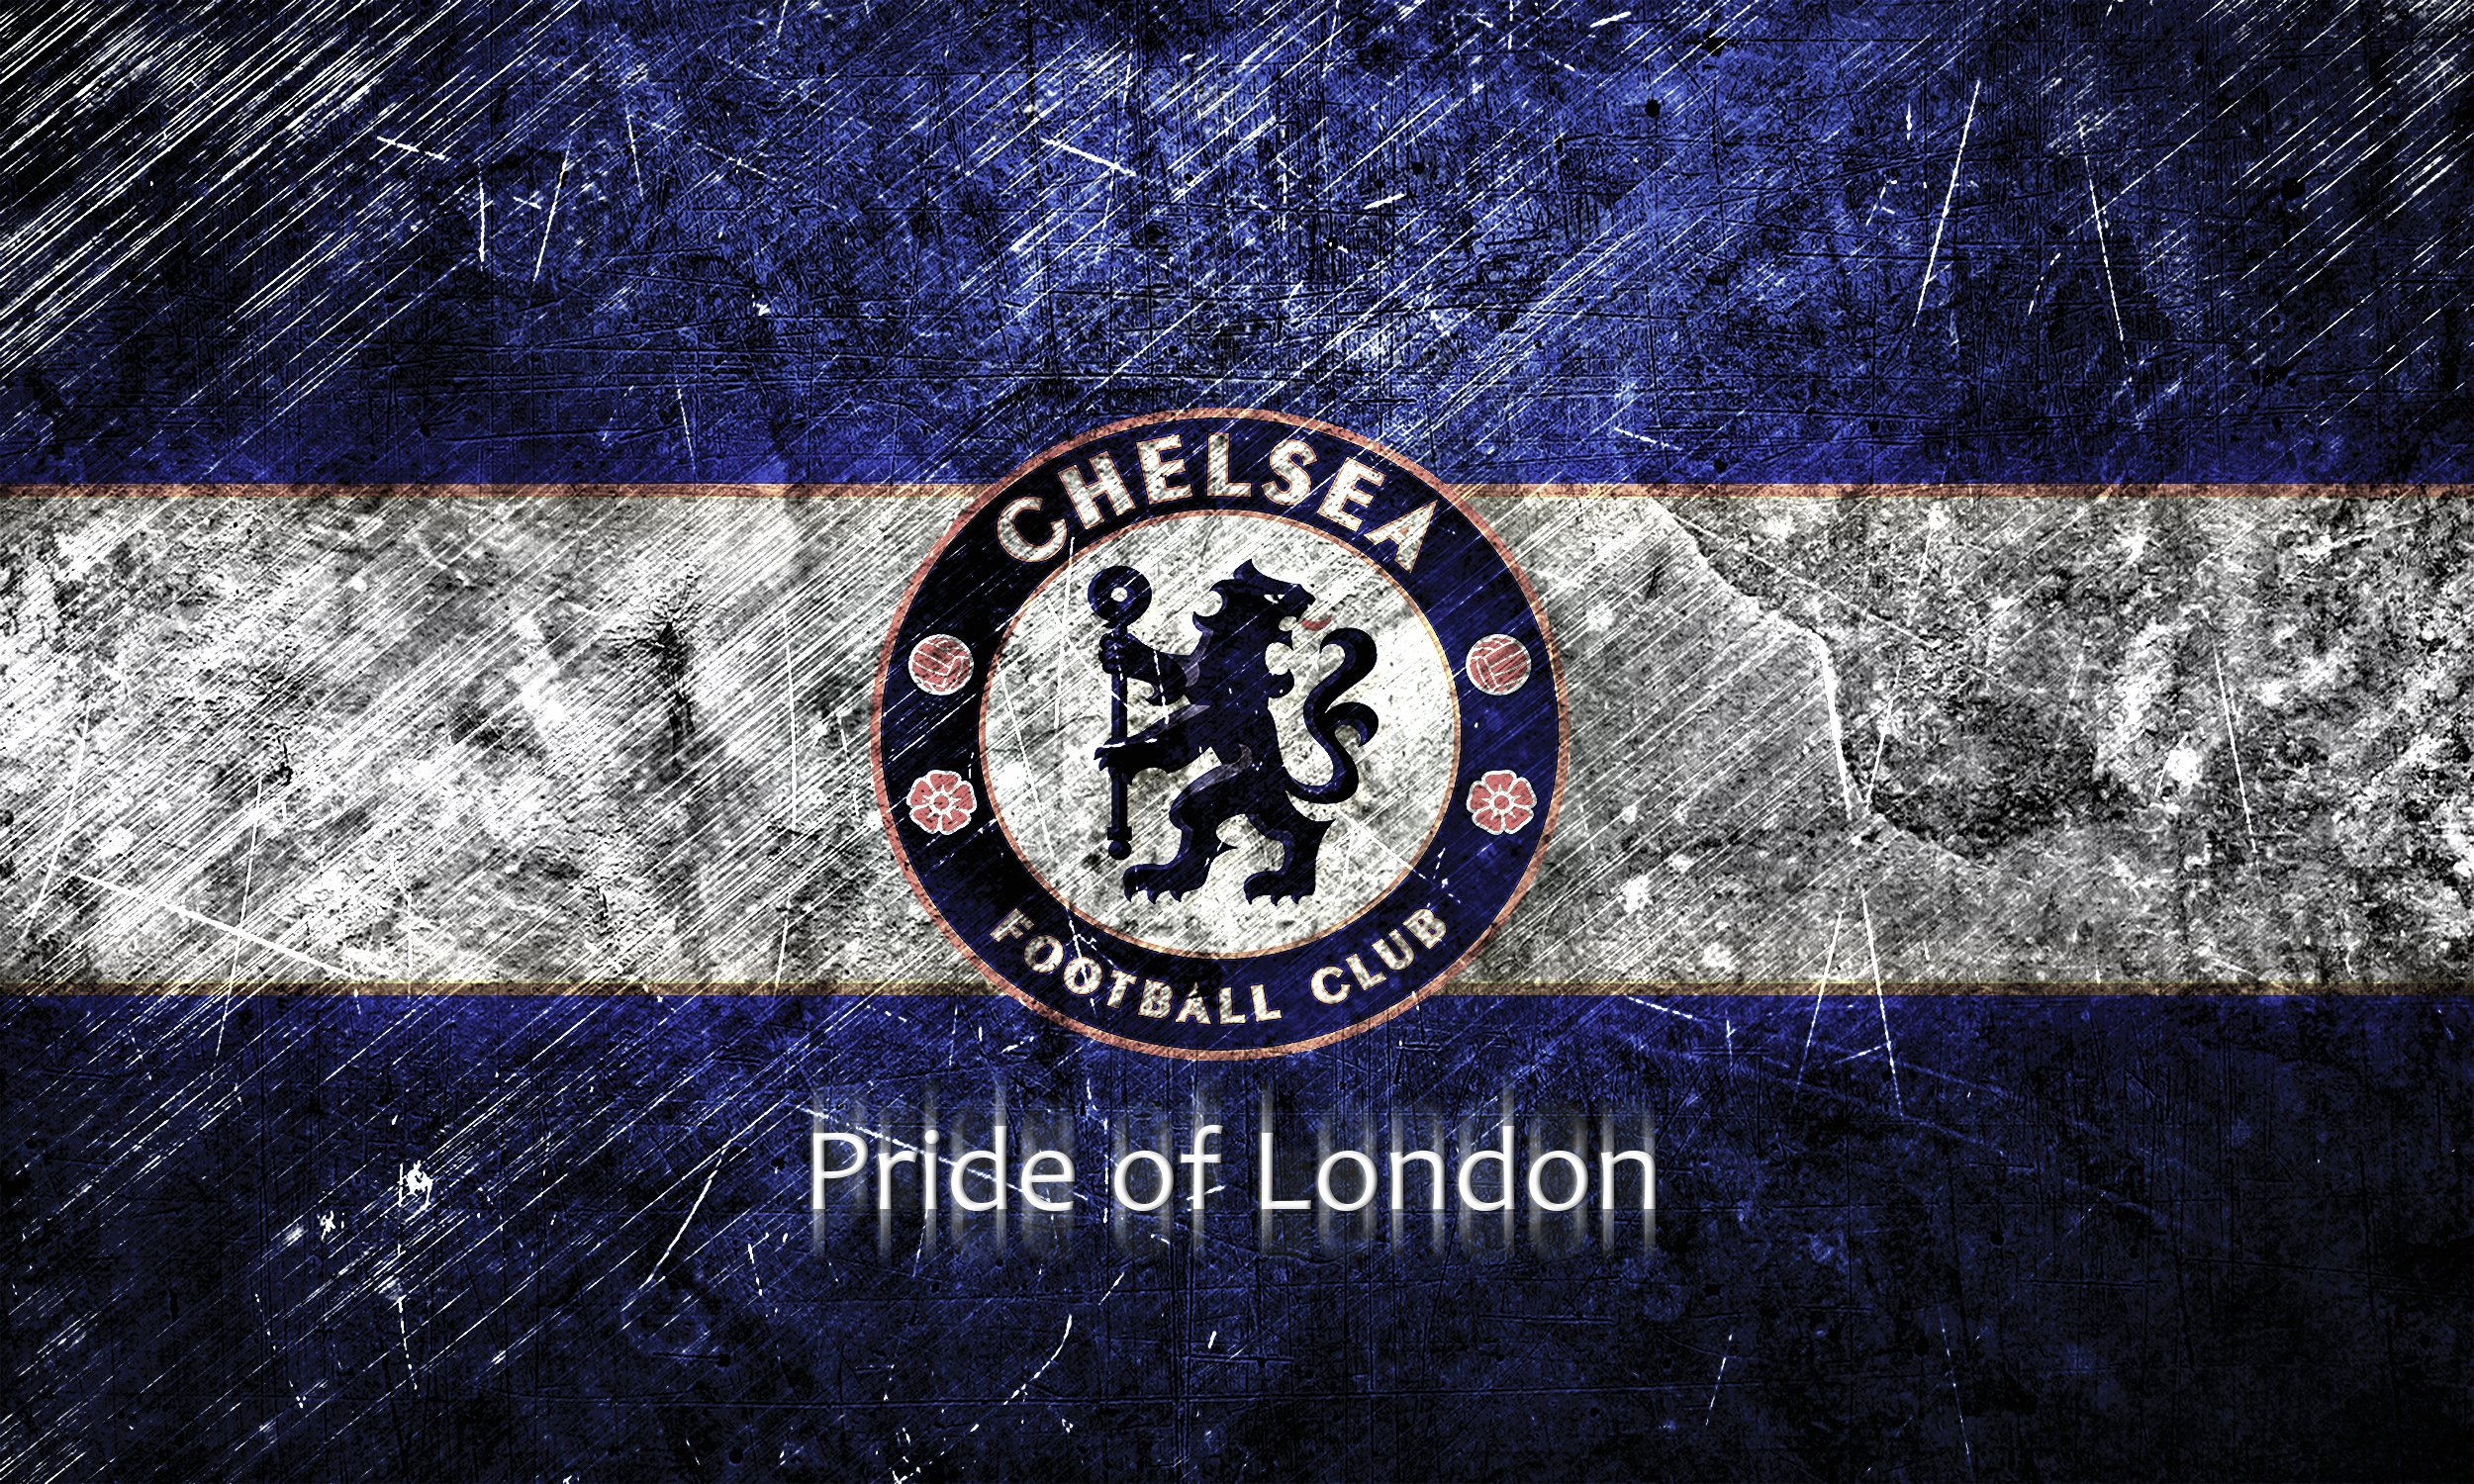 Fotos   Chelsea Fc Iphone Wallpaper Club 2500x1500